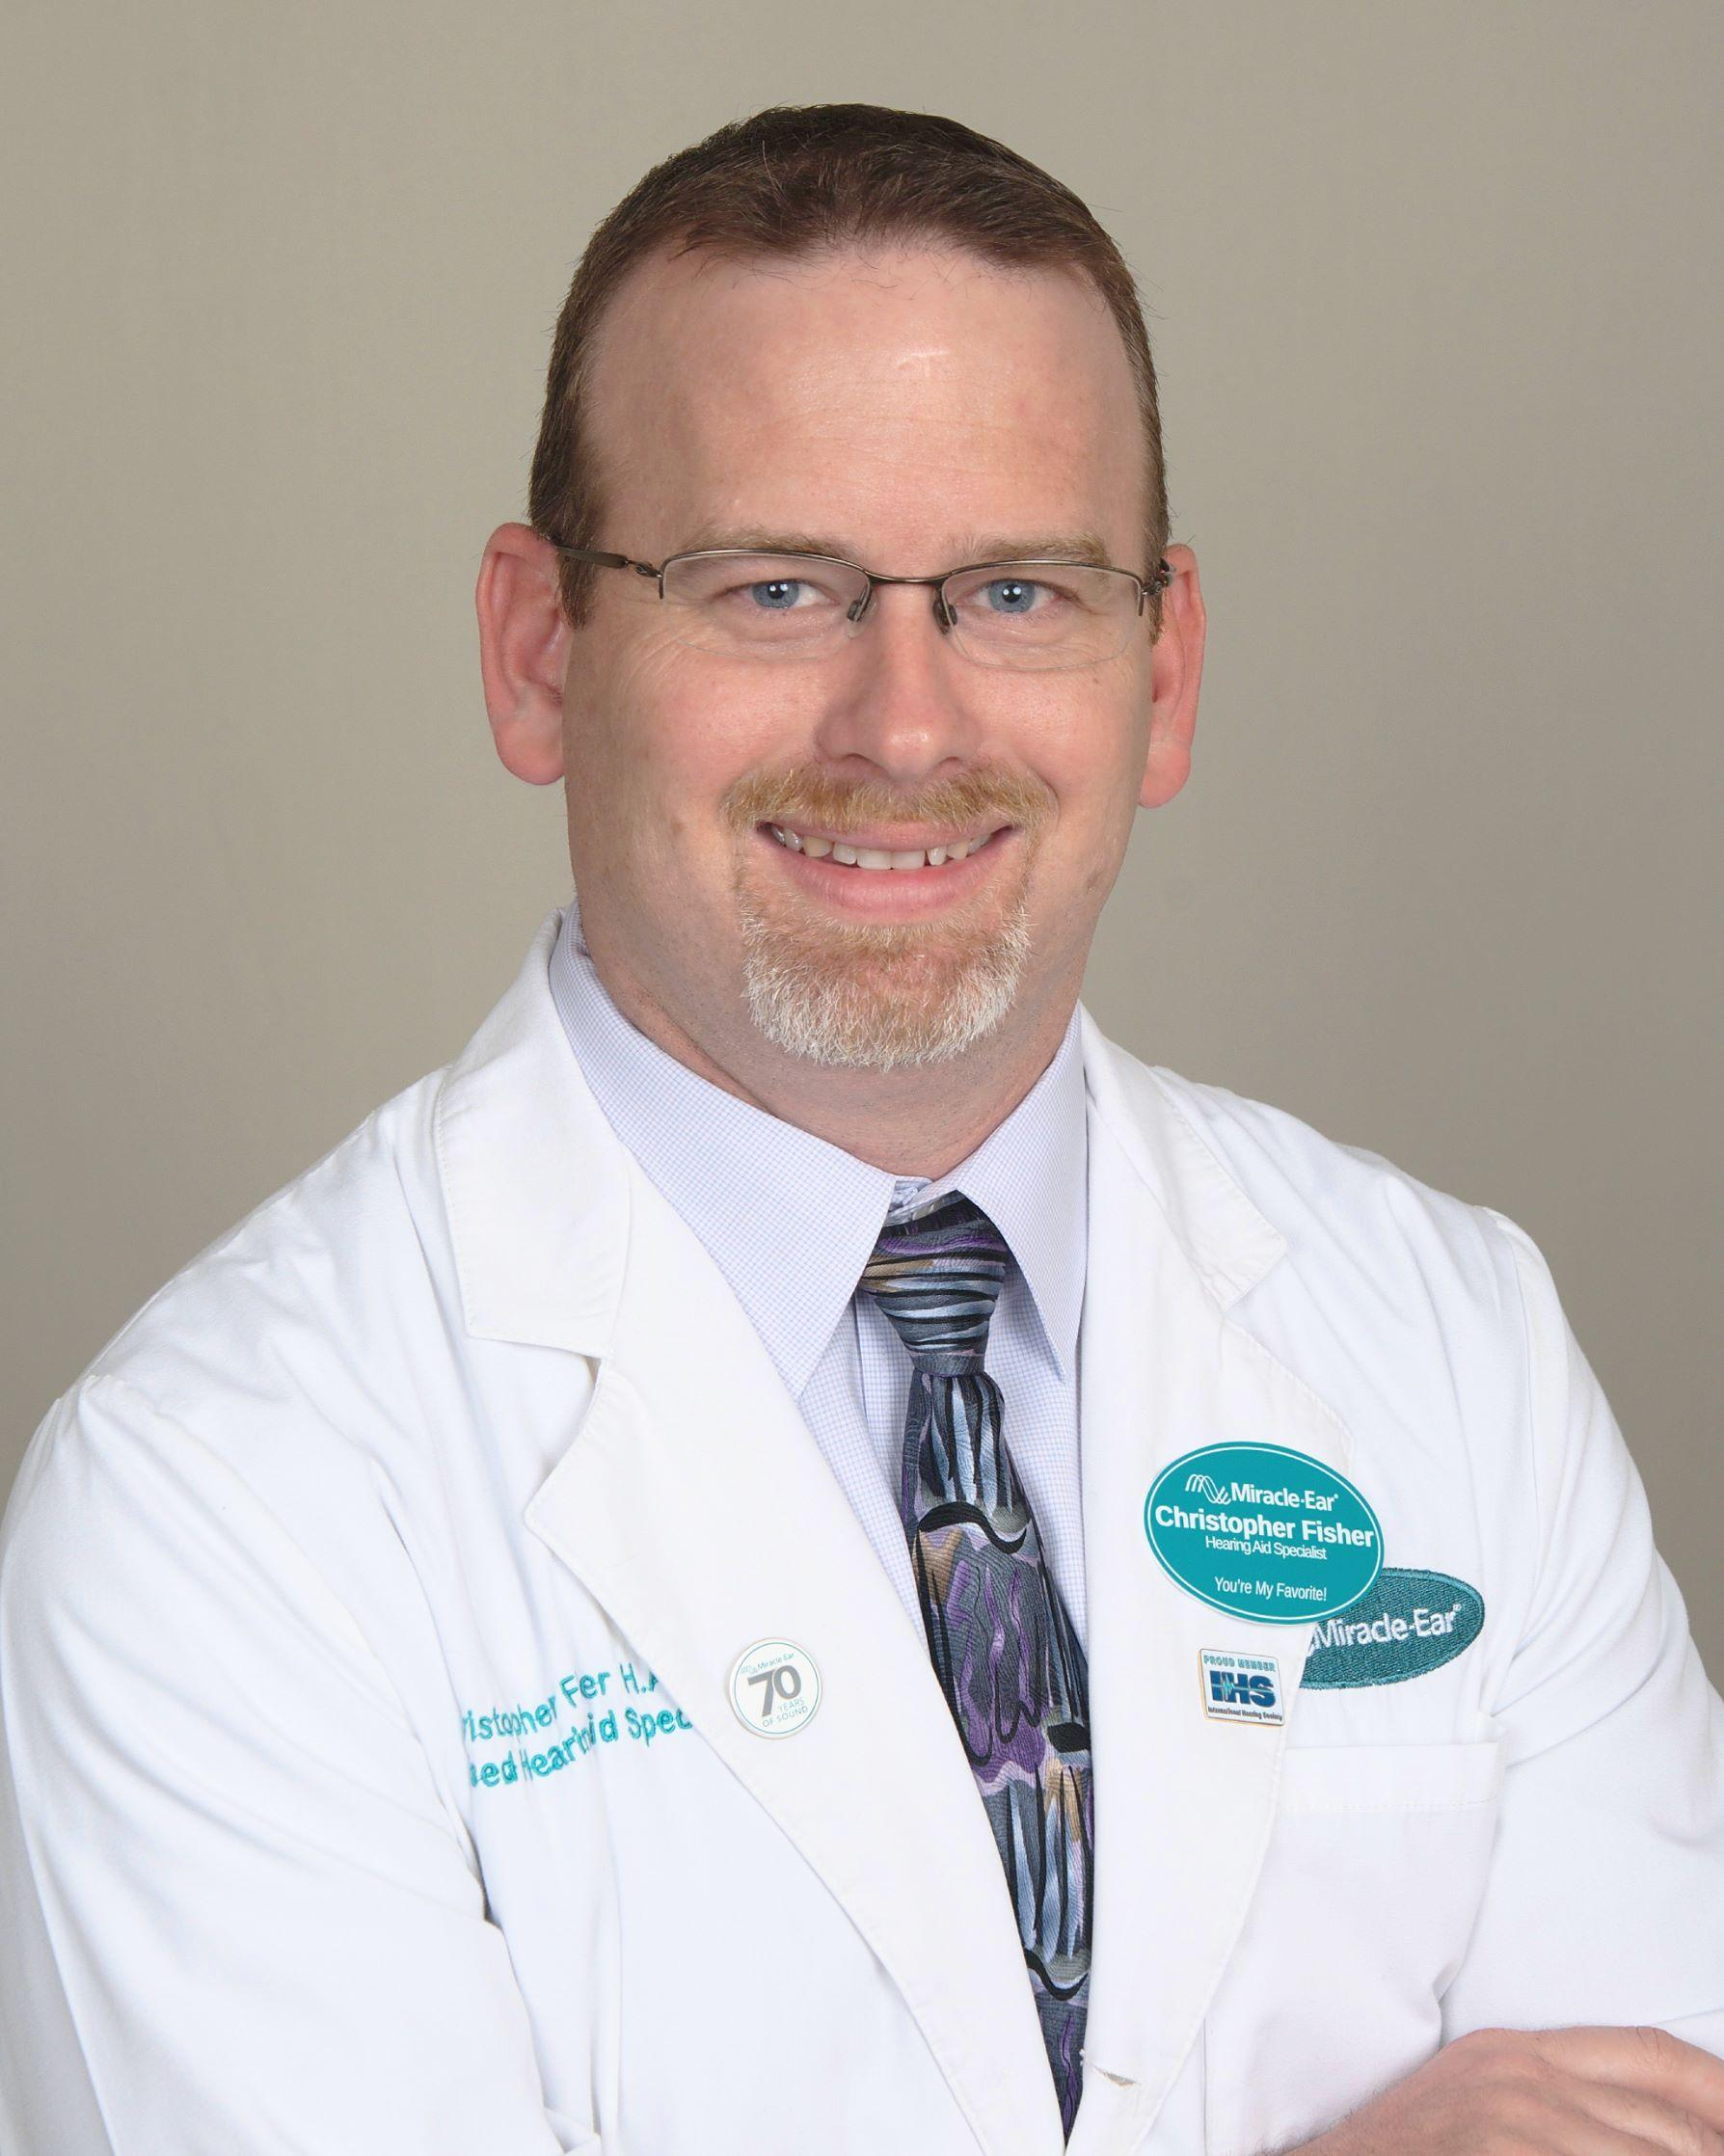 Profile Photo of Chris - Hearing Aid Specialist